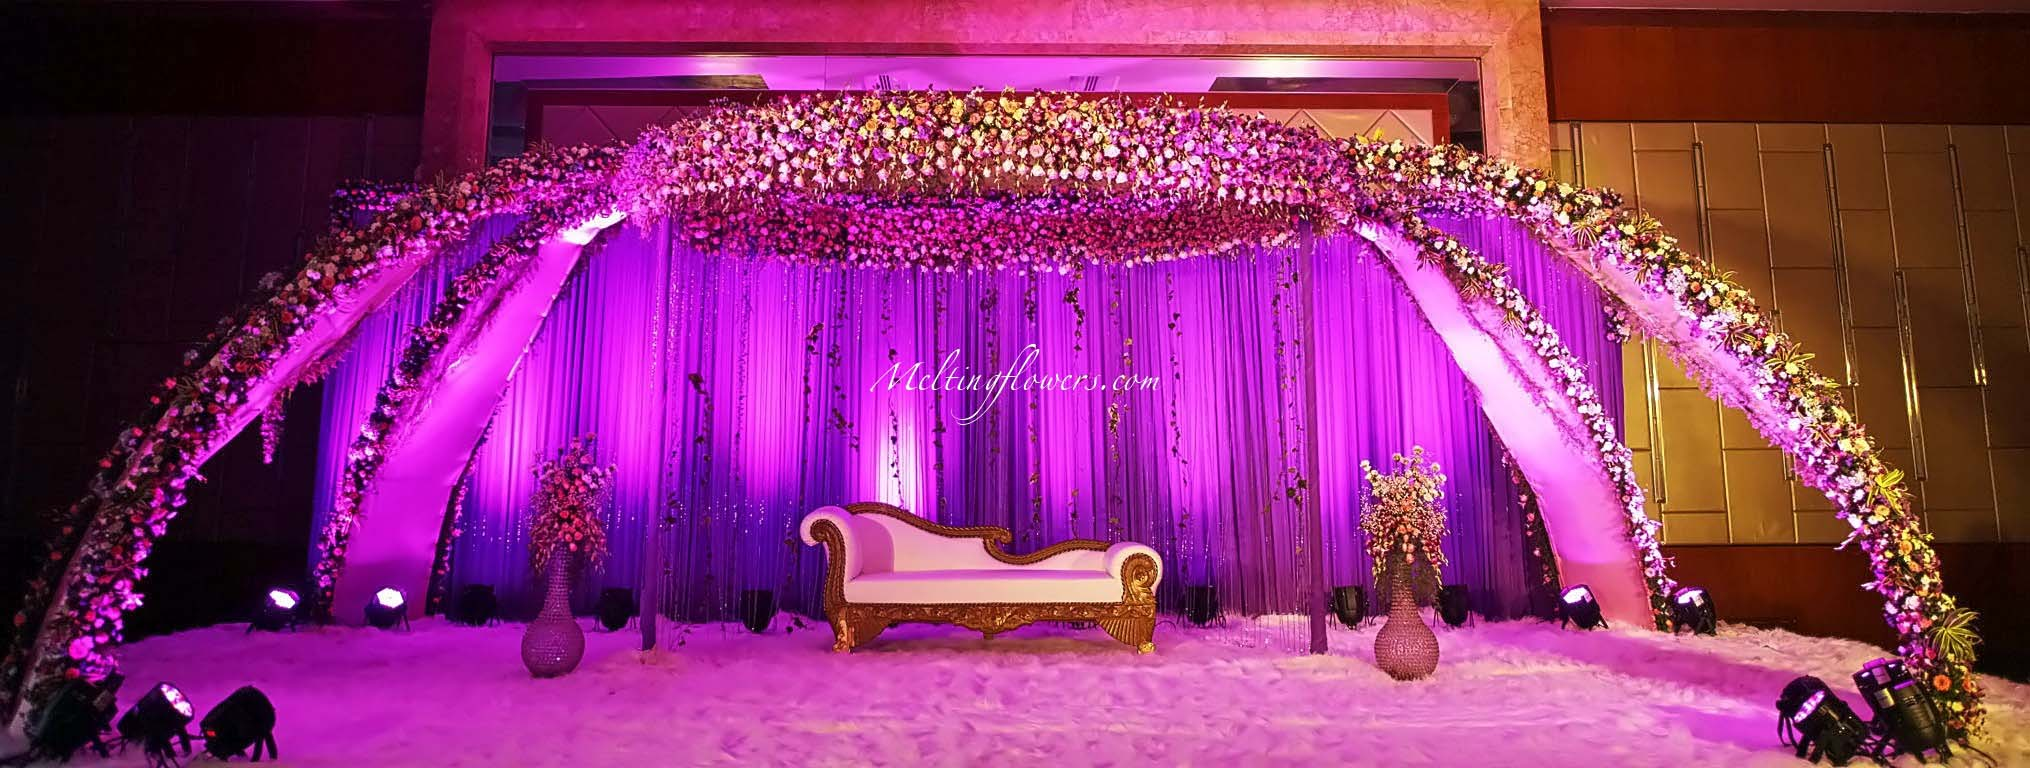 Wedding backdrops backdrop decorations melting flowers for Background stage decoration